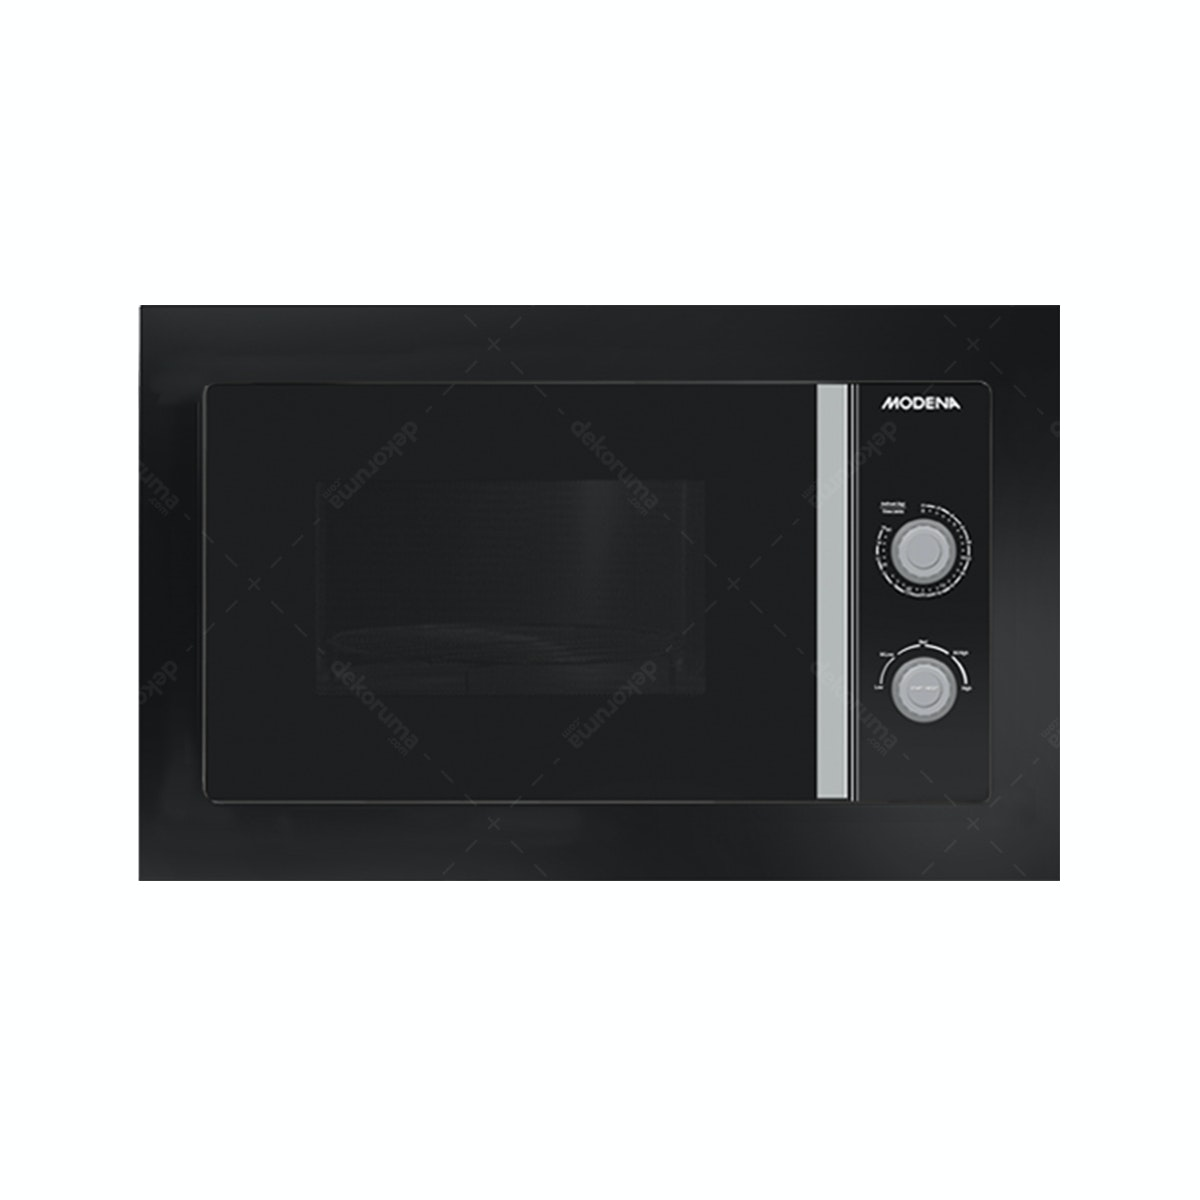 Modena Microwave Oven Tanam/Freestanding 22 Liter PALAZZO MK 2203